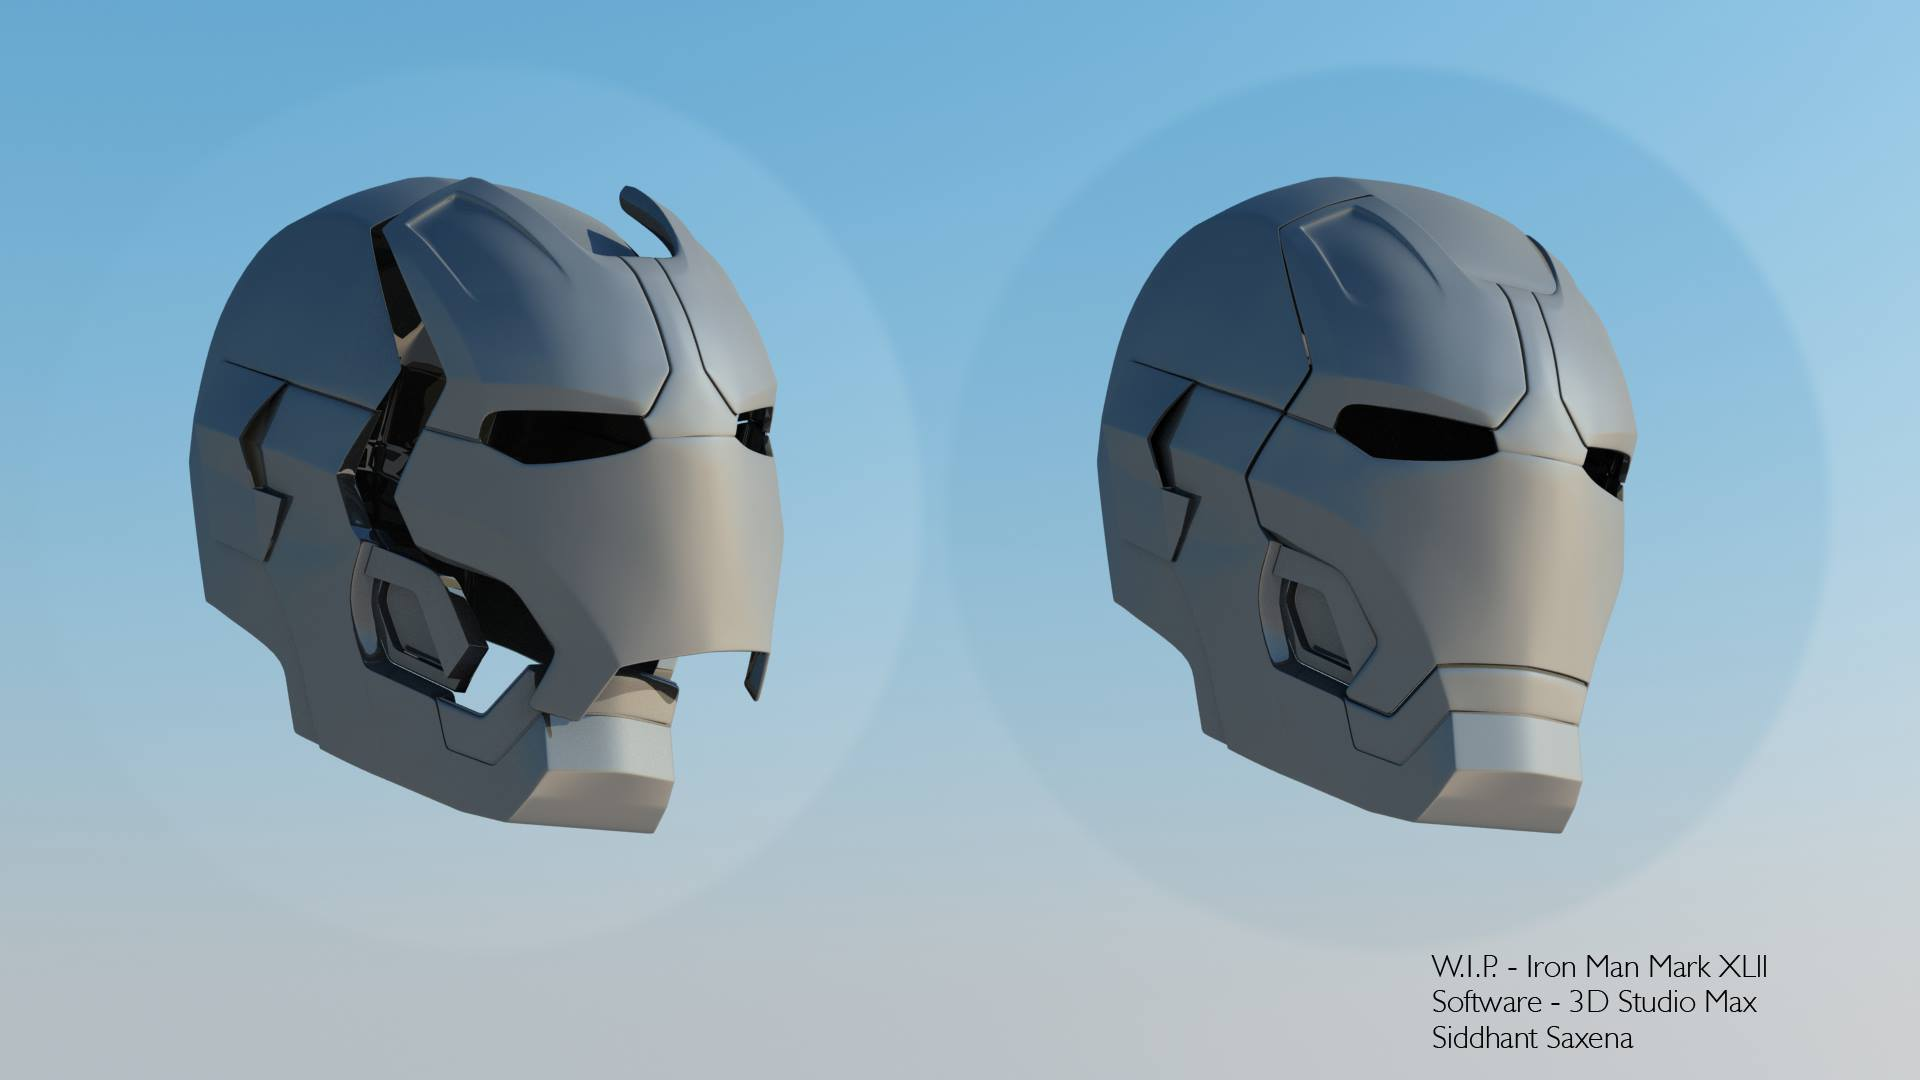 Picture suggestion for iron man mark 42 helmet malvernweather Images